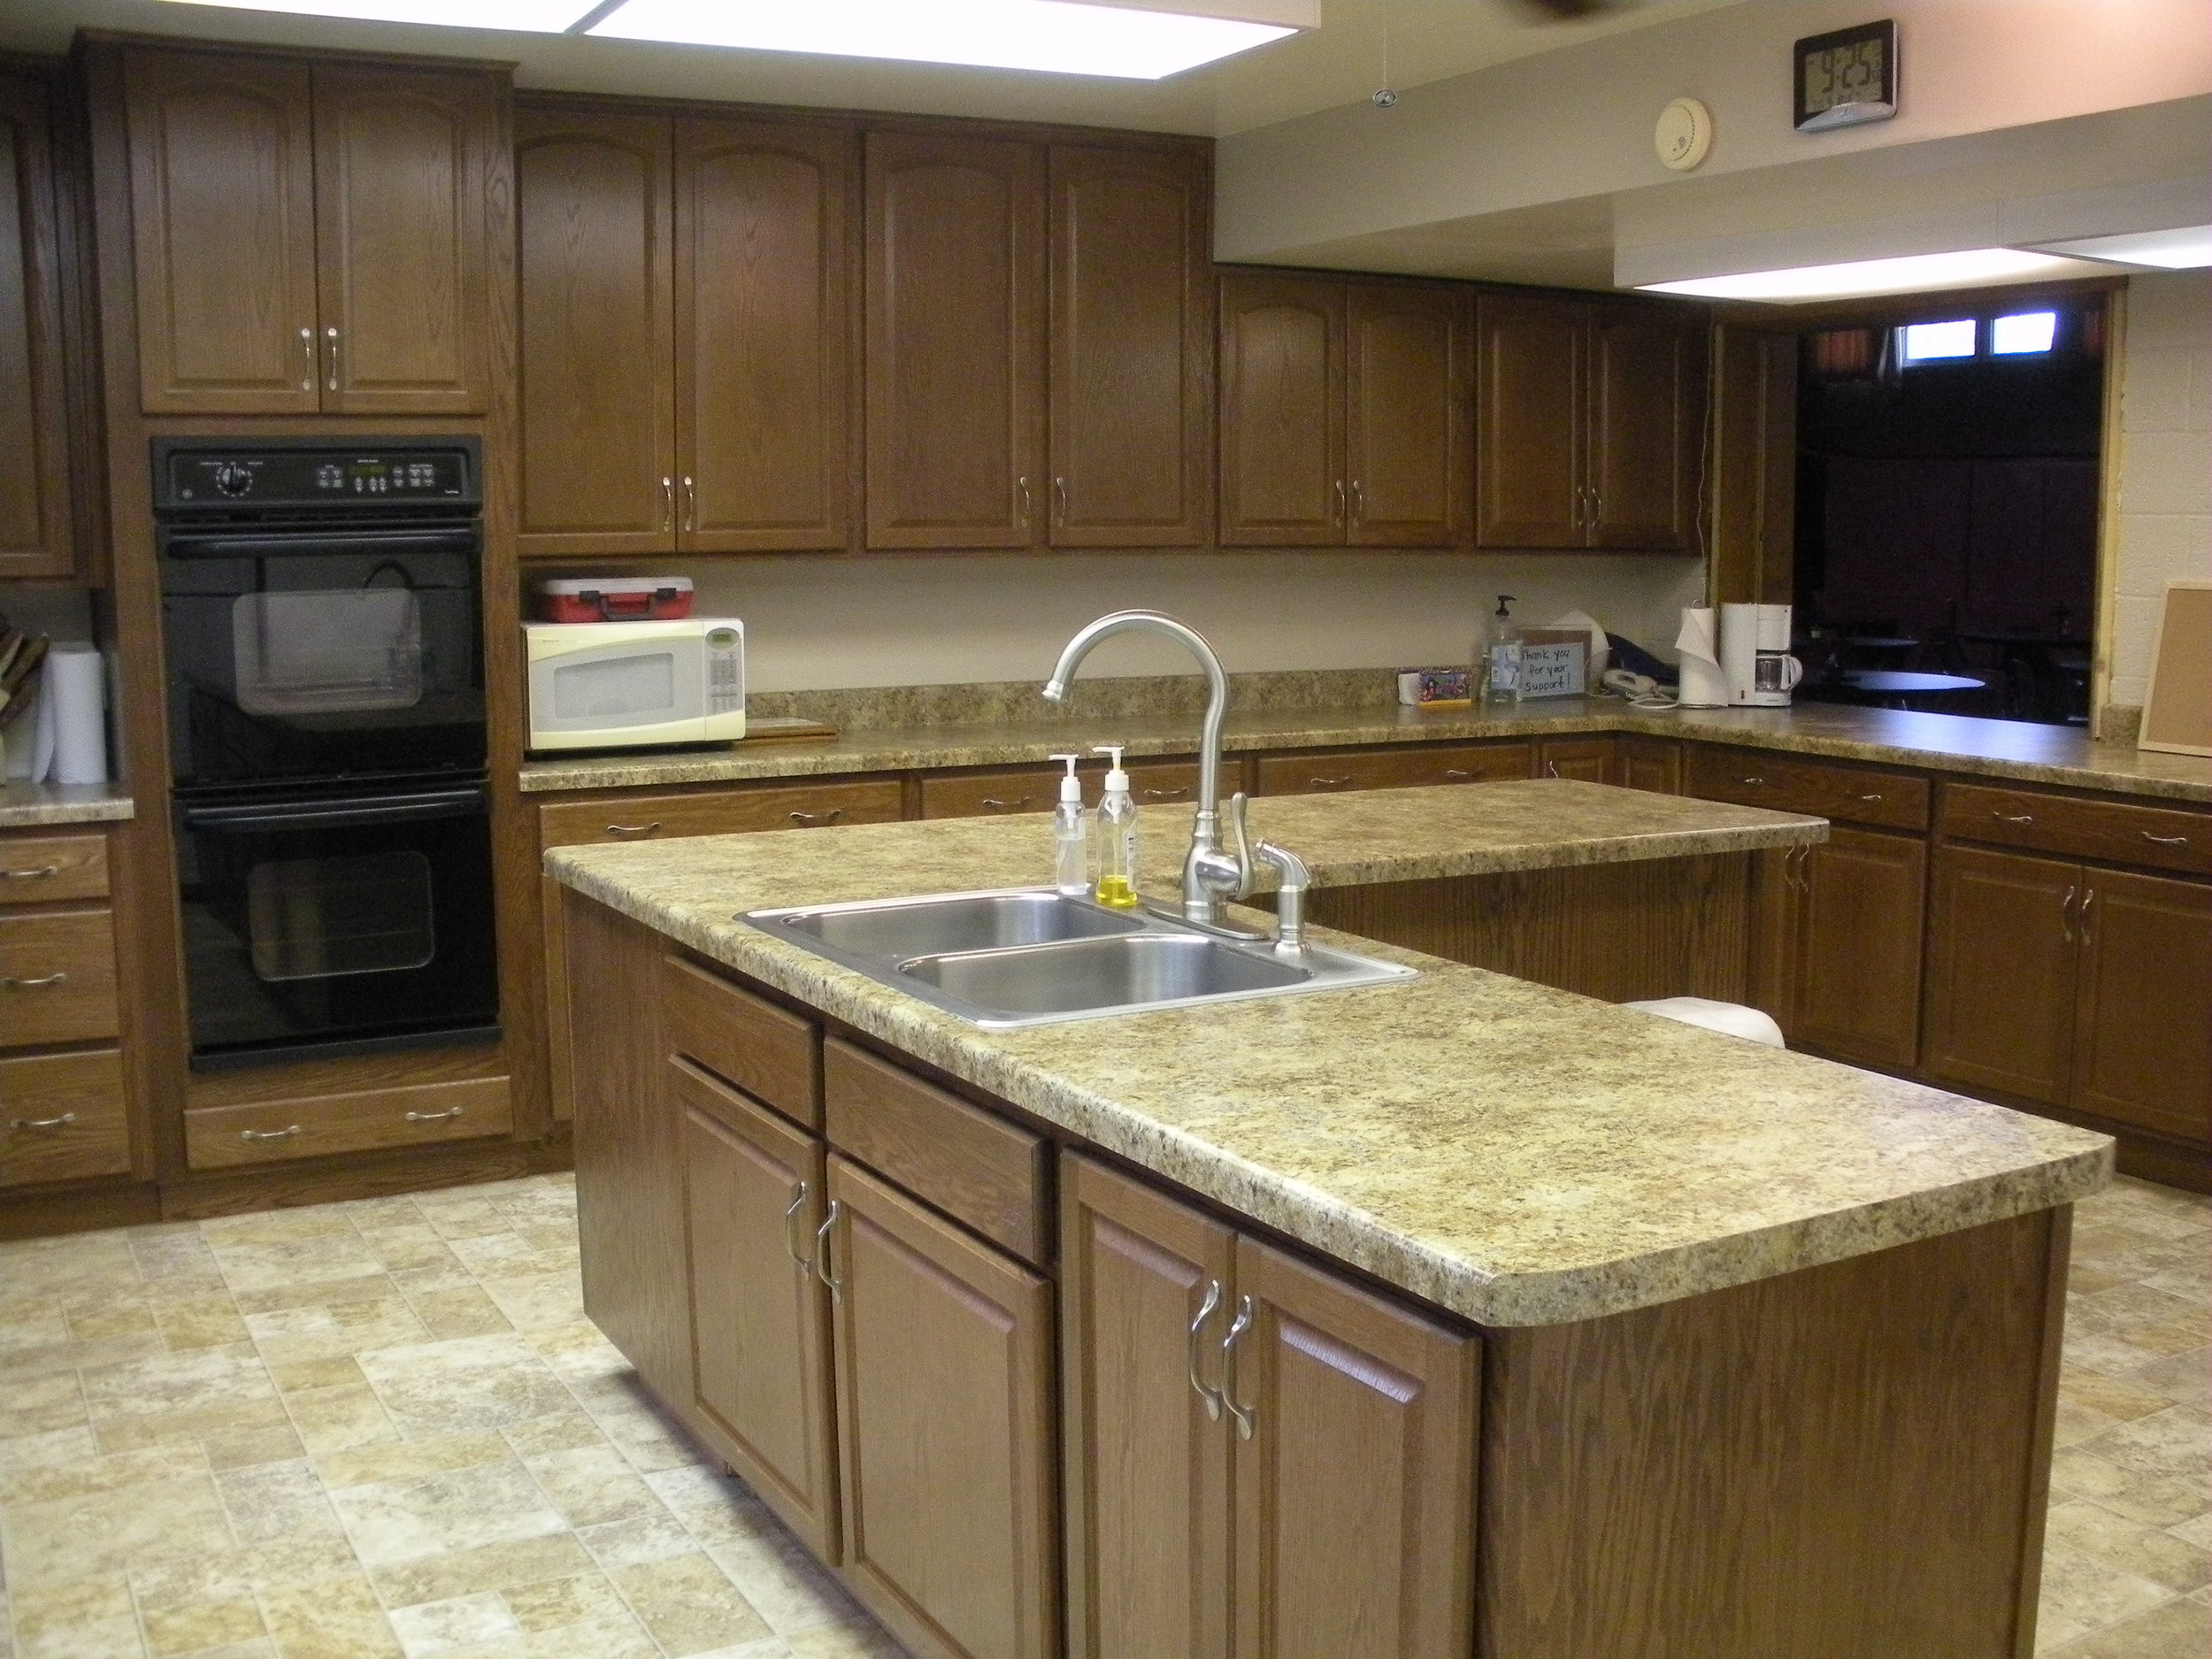 Renovation of Kitchen 2013 011.jpg